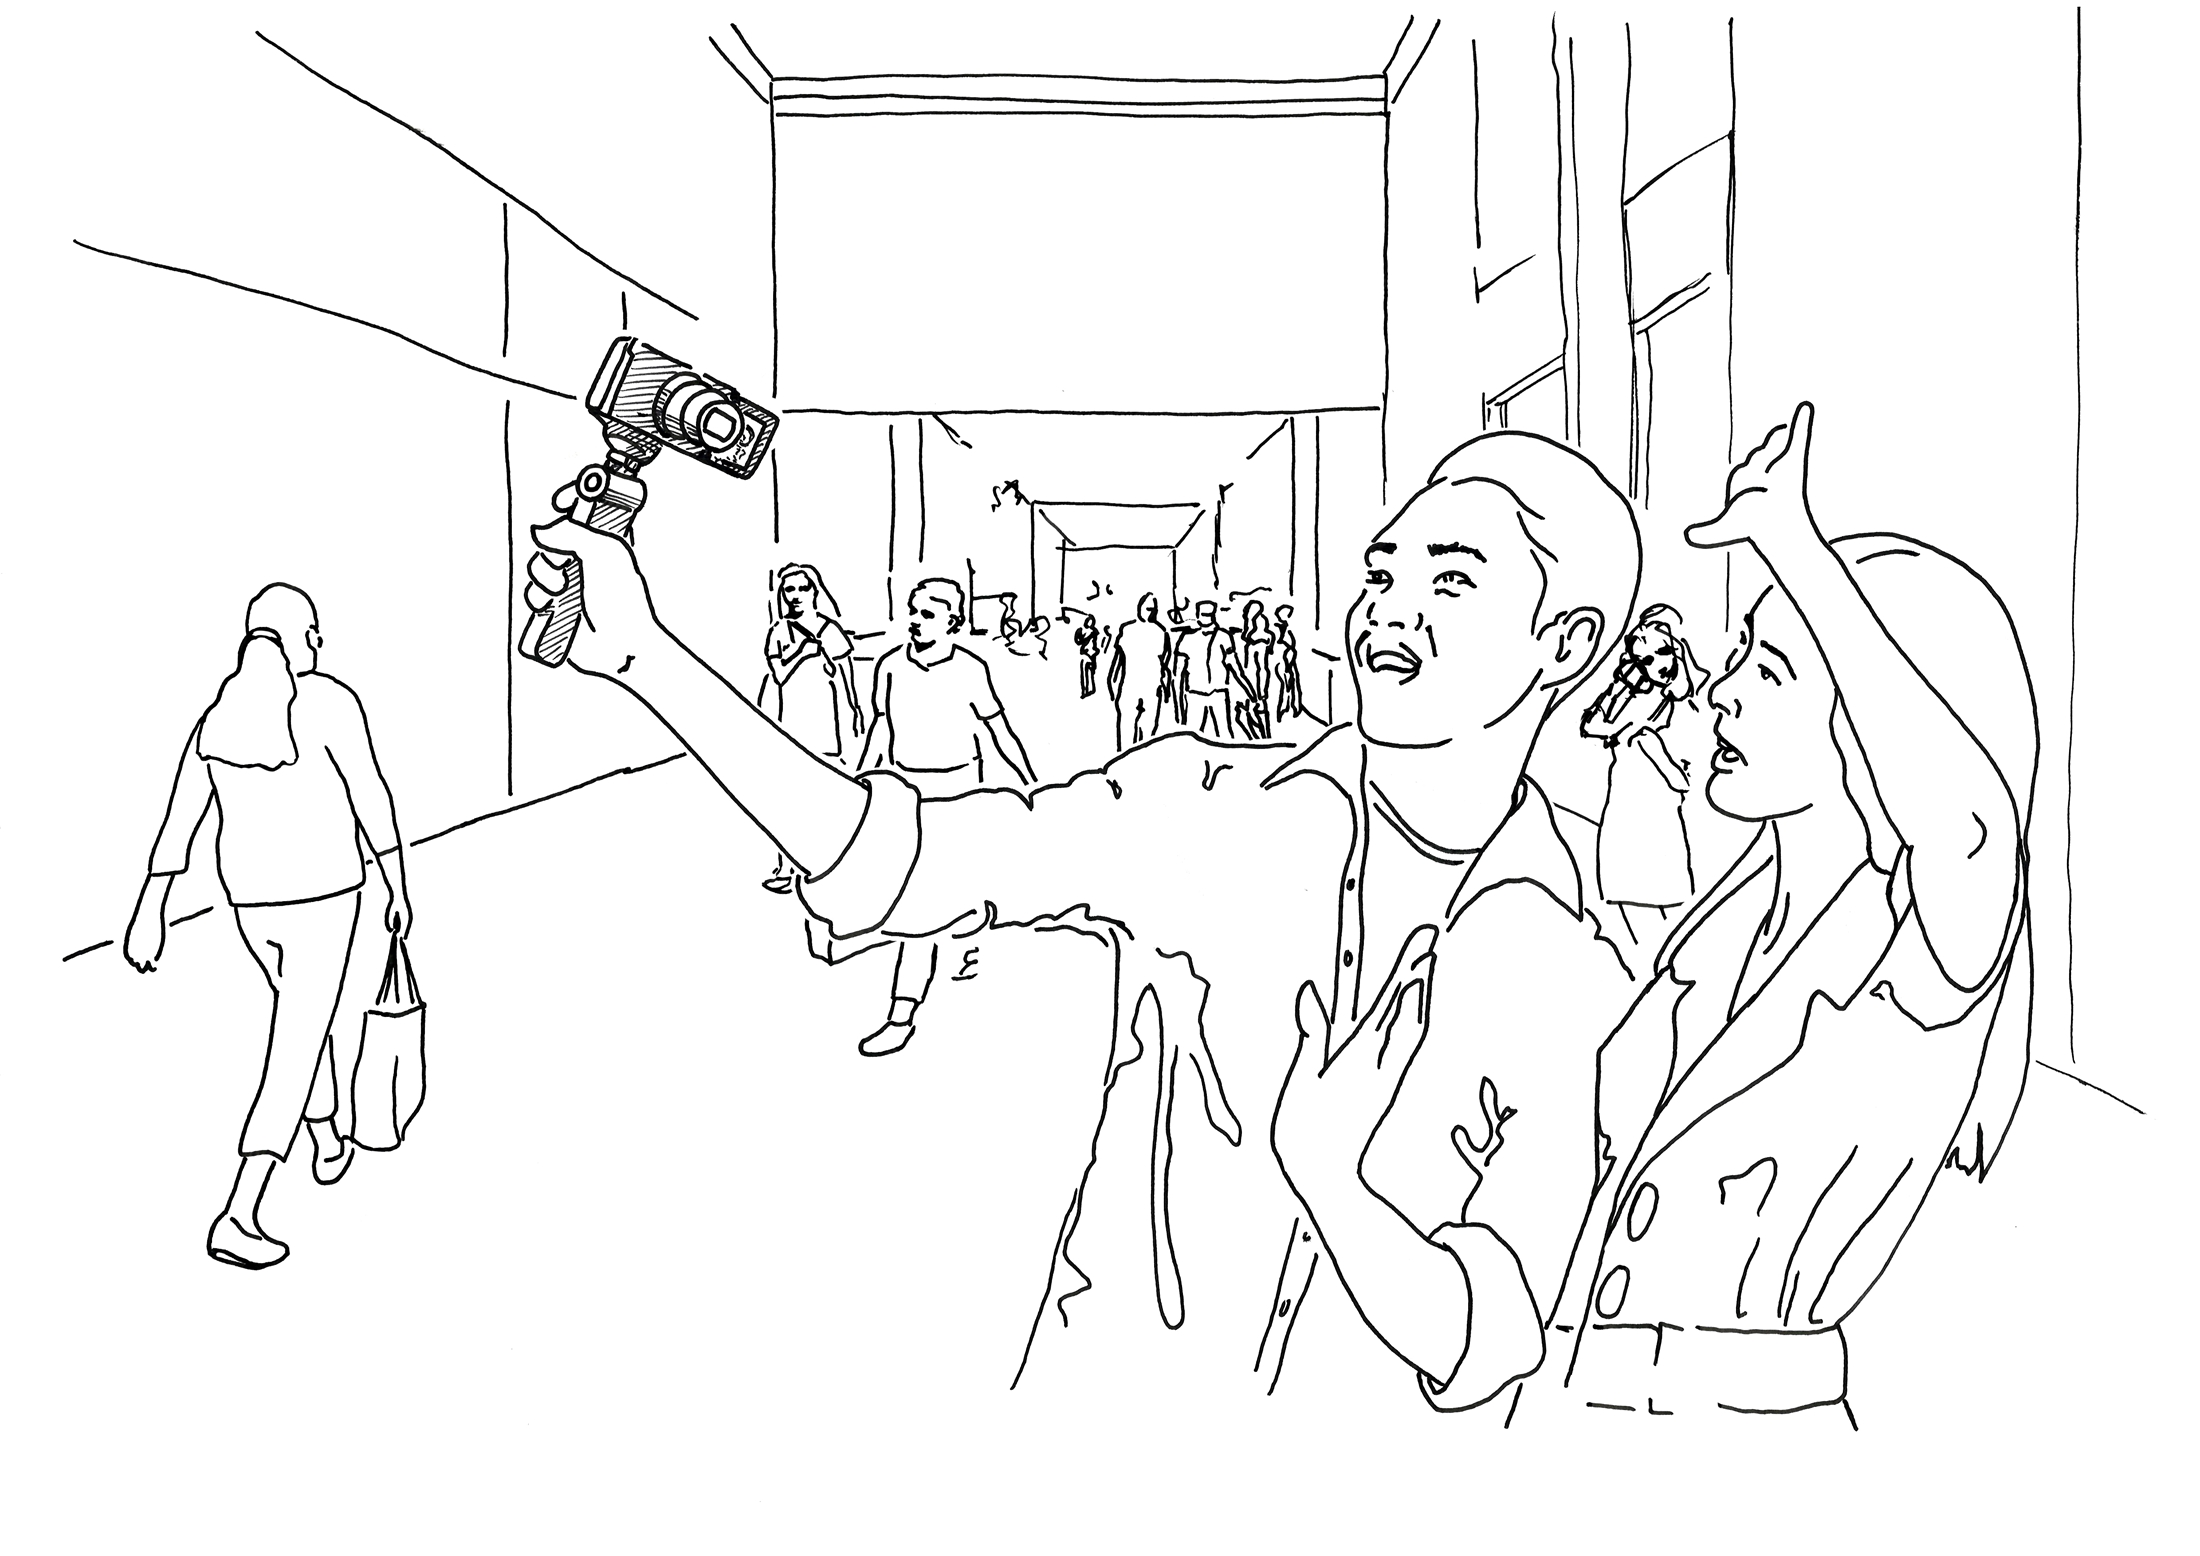 Illustration of outdoor mall setting, camera with no mic setup